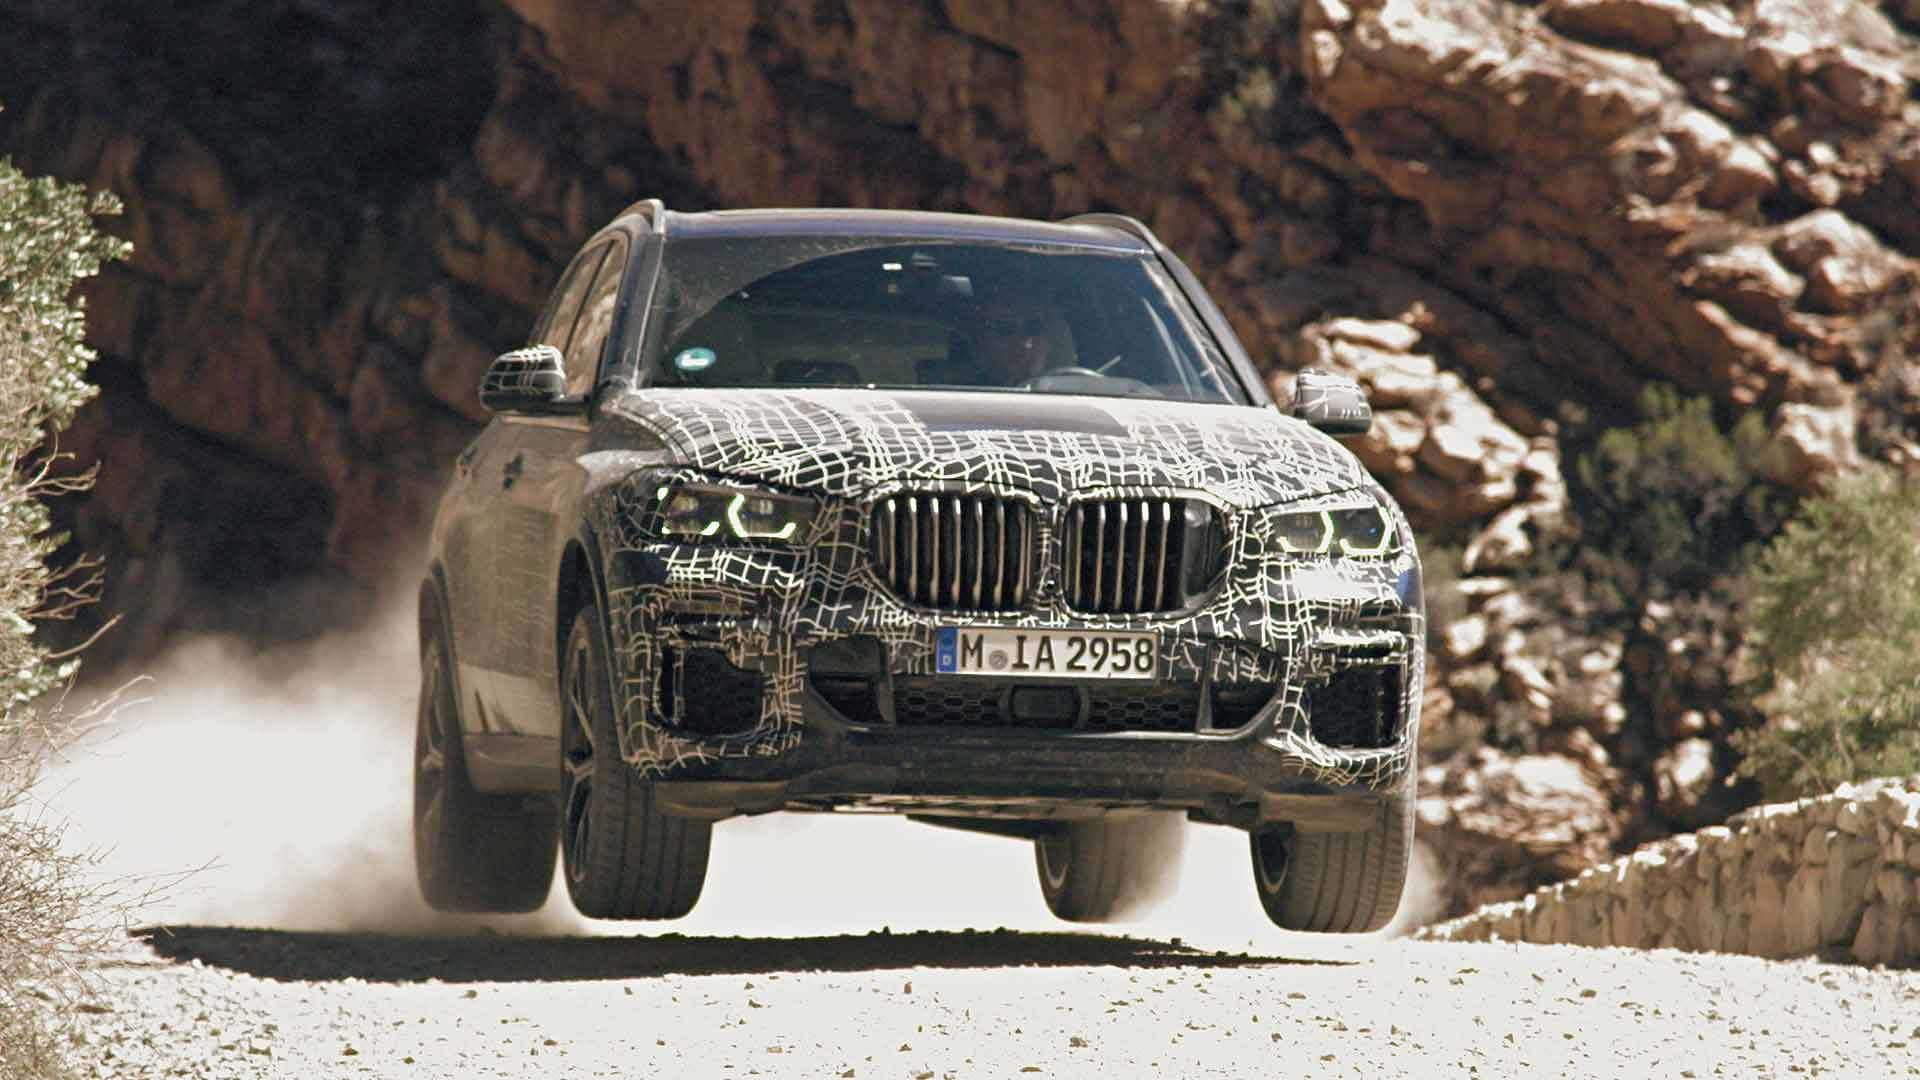 The German car manufacturer has recently uploaded a new video showcasing its next-generation BMW Х5 running tests